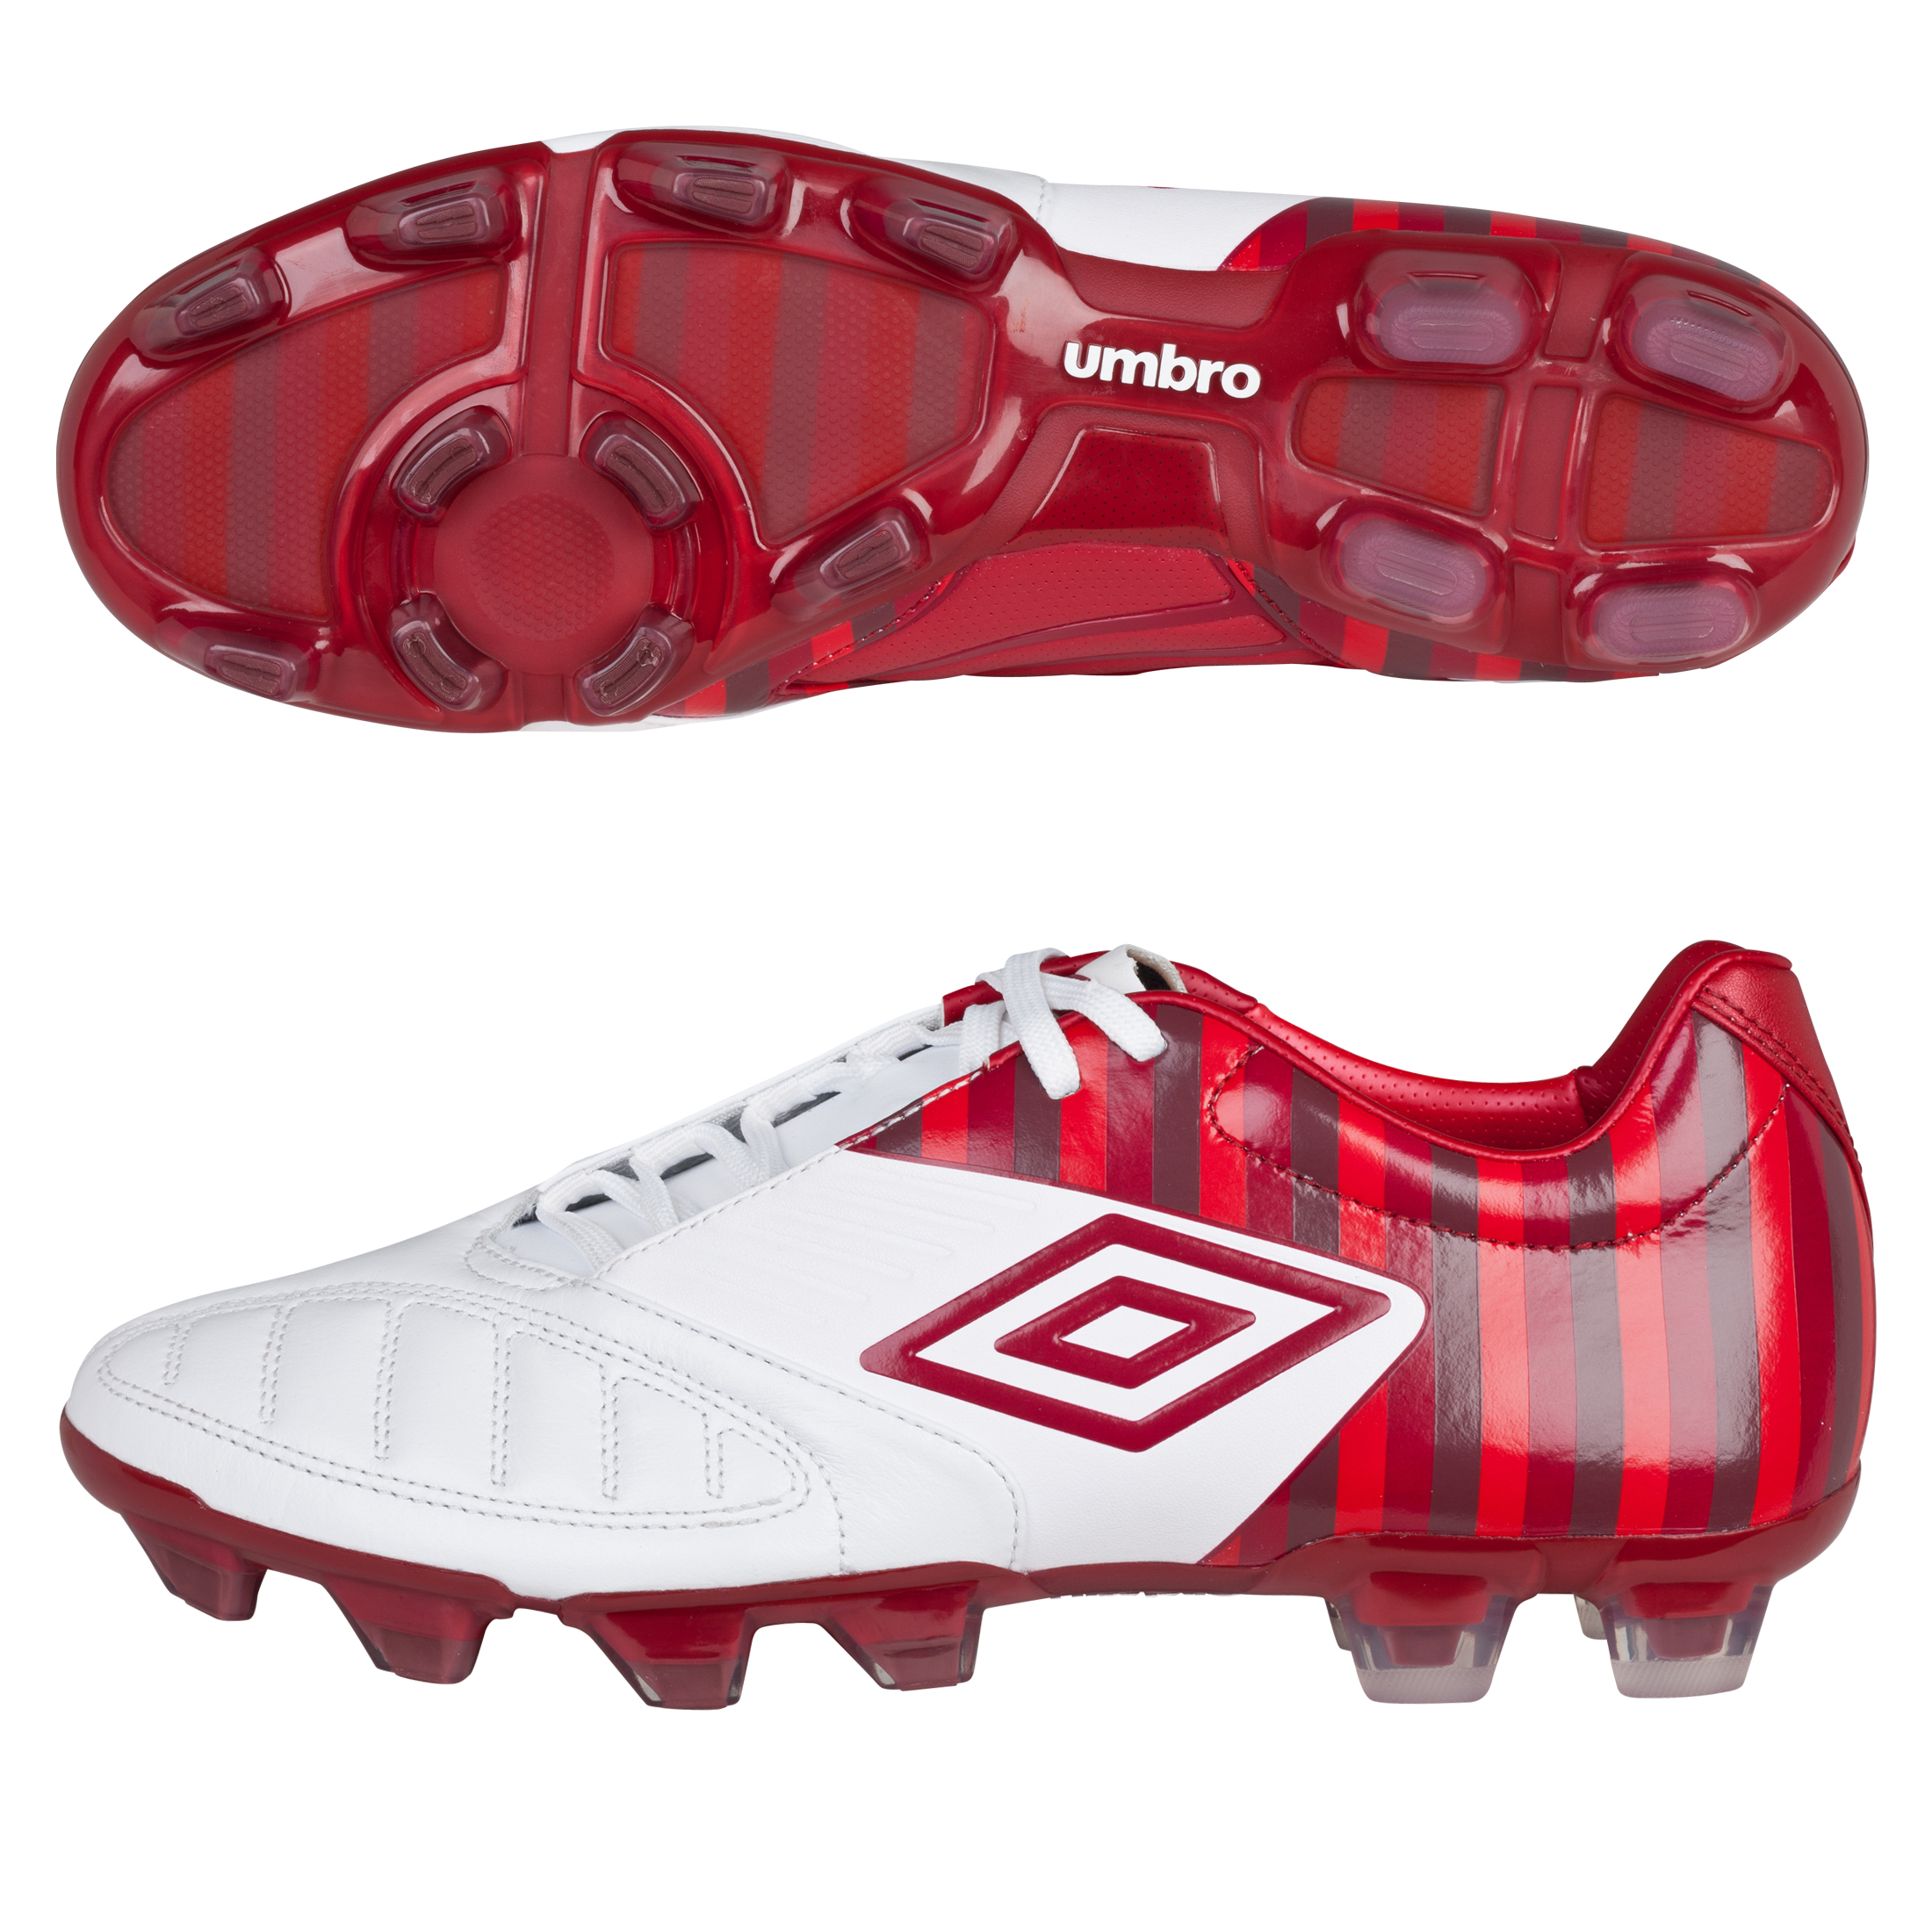 Umbro Geometra Pro 2012 Firm Ground Football Boots - White / Vermillion / Dark Vermillion / Deep Claret